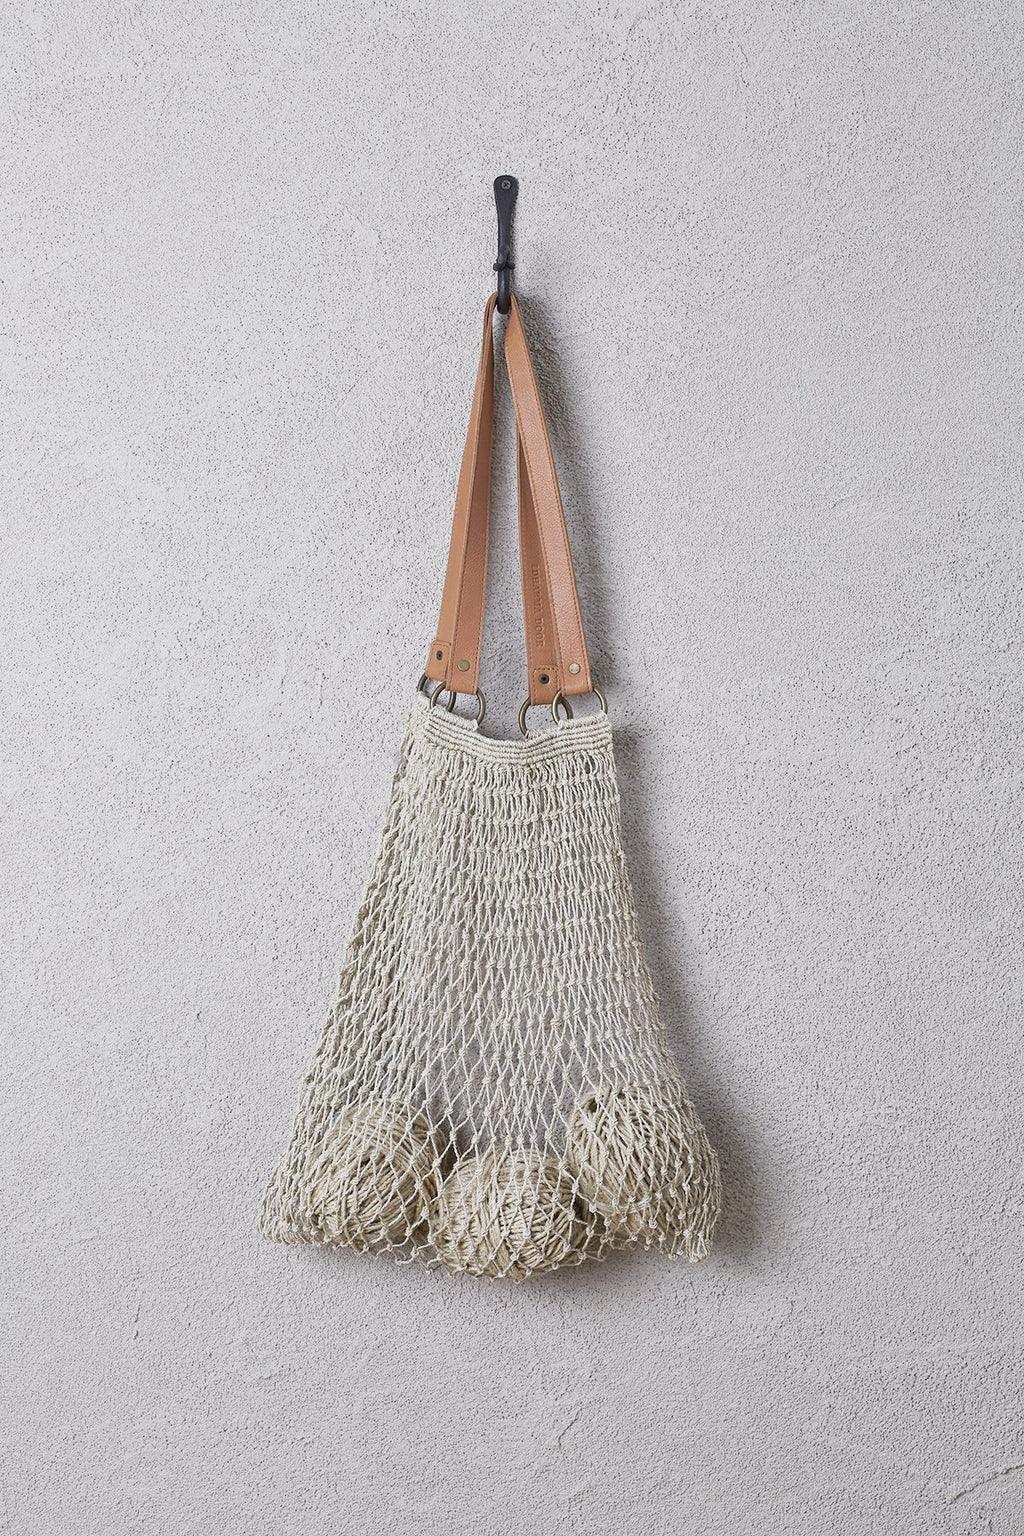 Jute String Bag with Brown Leather Handles